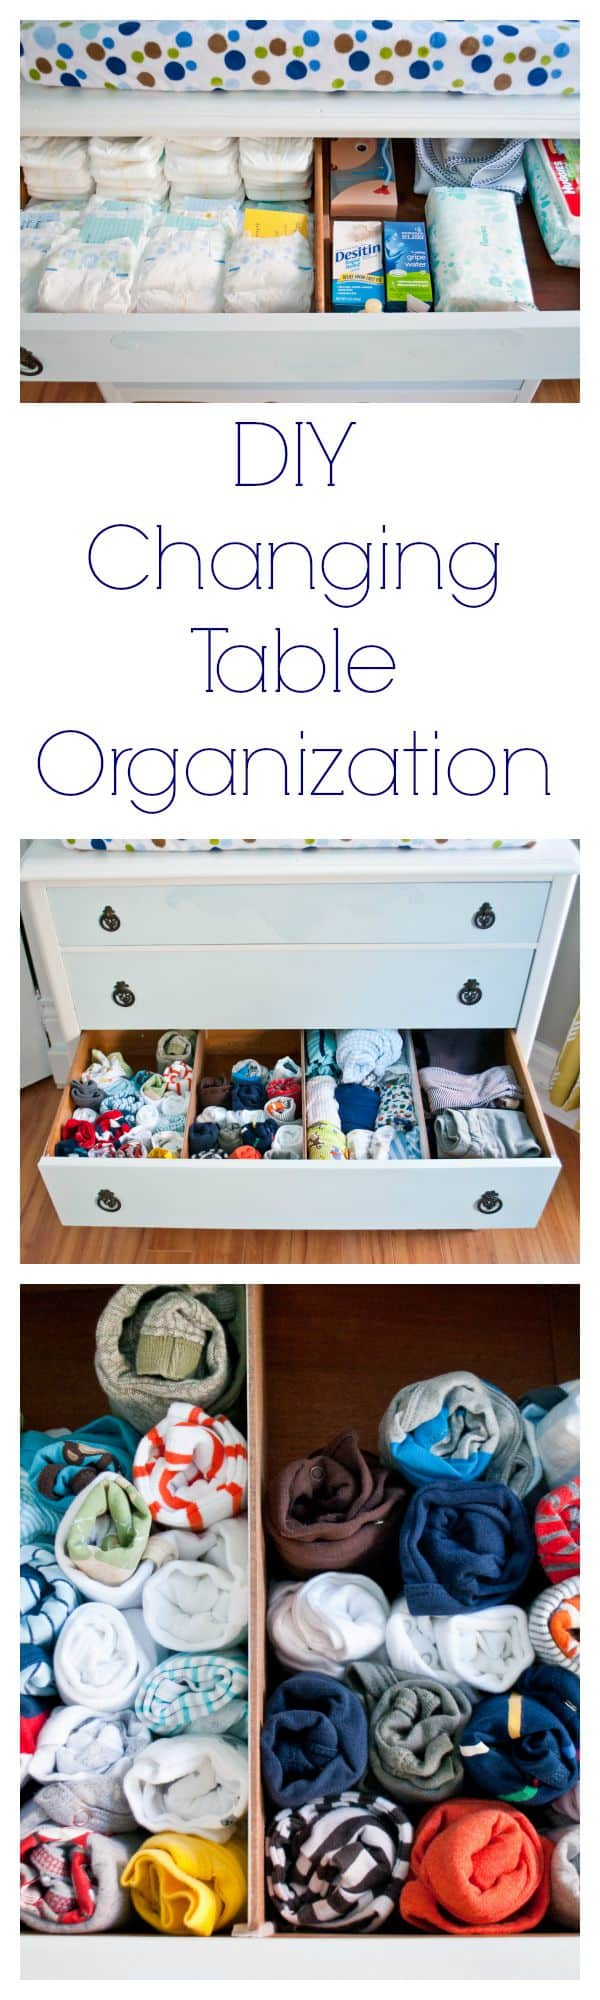 changing-table-organization